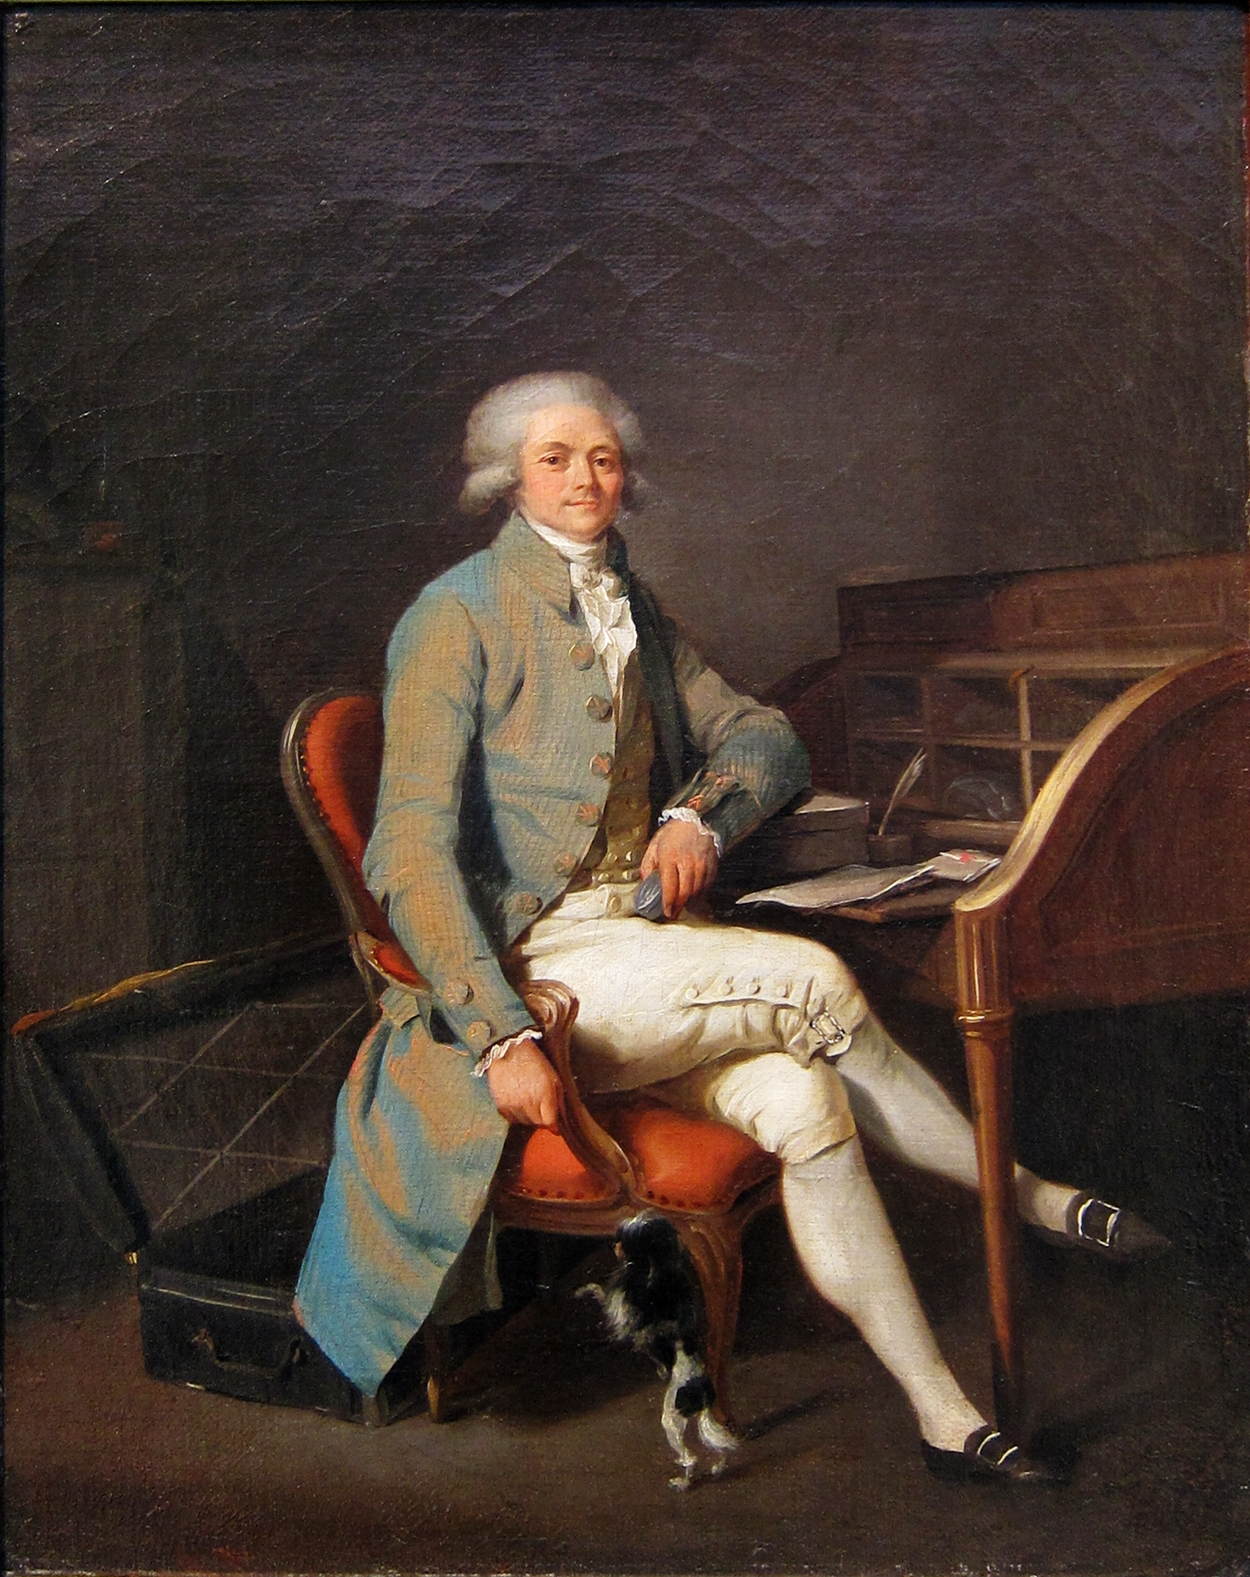 robespierre and the reign of terror Robespierre had made many enemies in his absolute rule, and they began attacking him through press and in the convention some blamed him for the excess use of terror, while others condemned him for being too moderate.